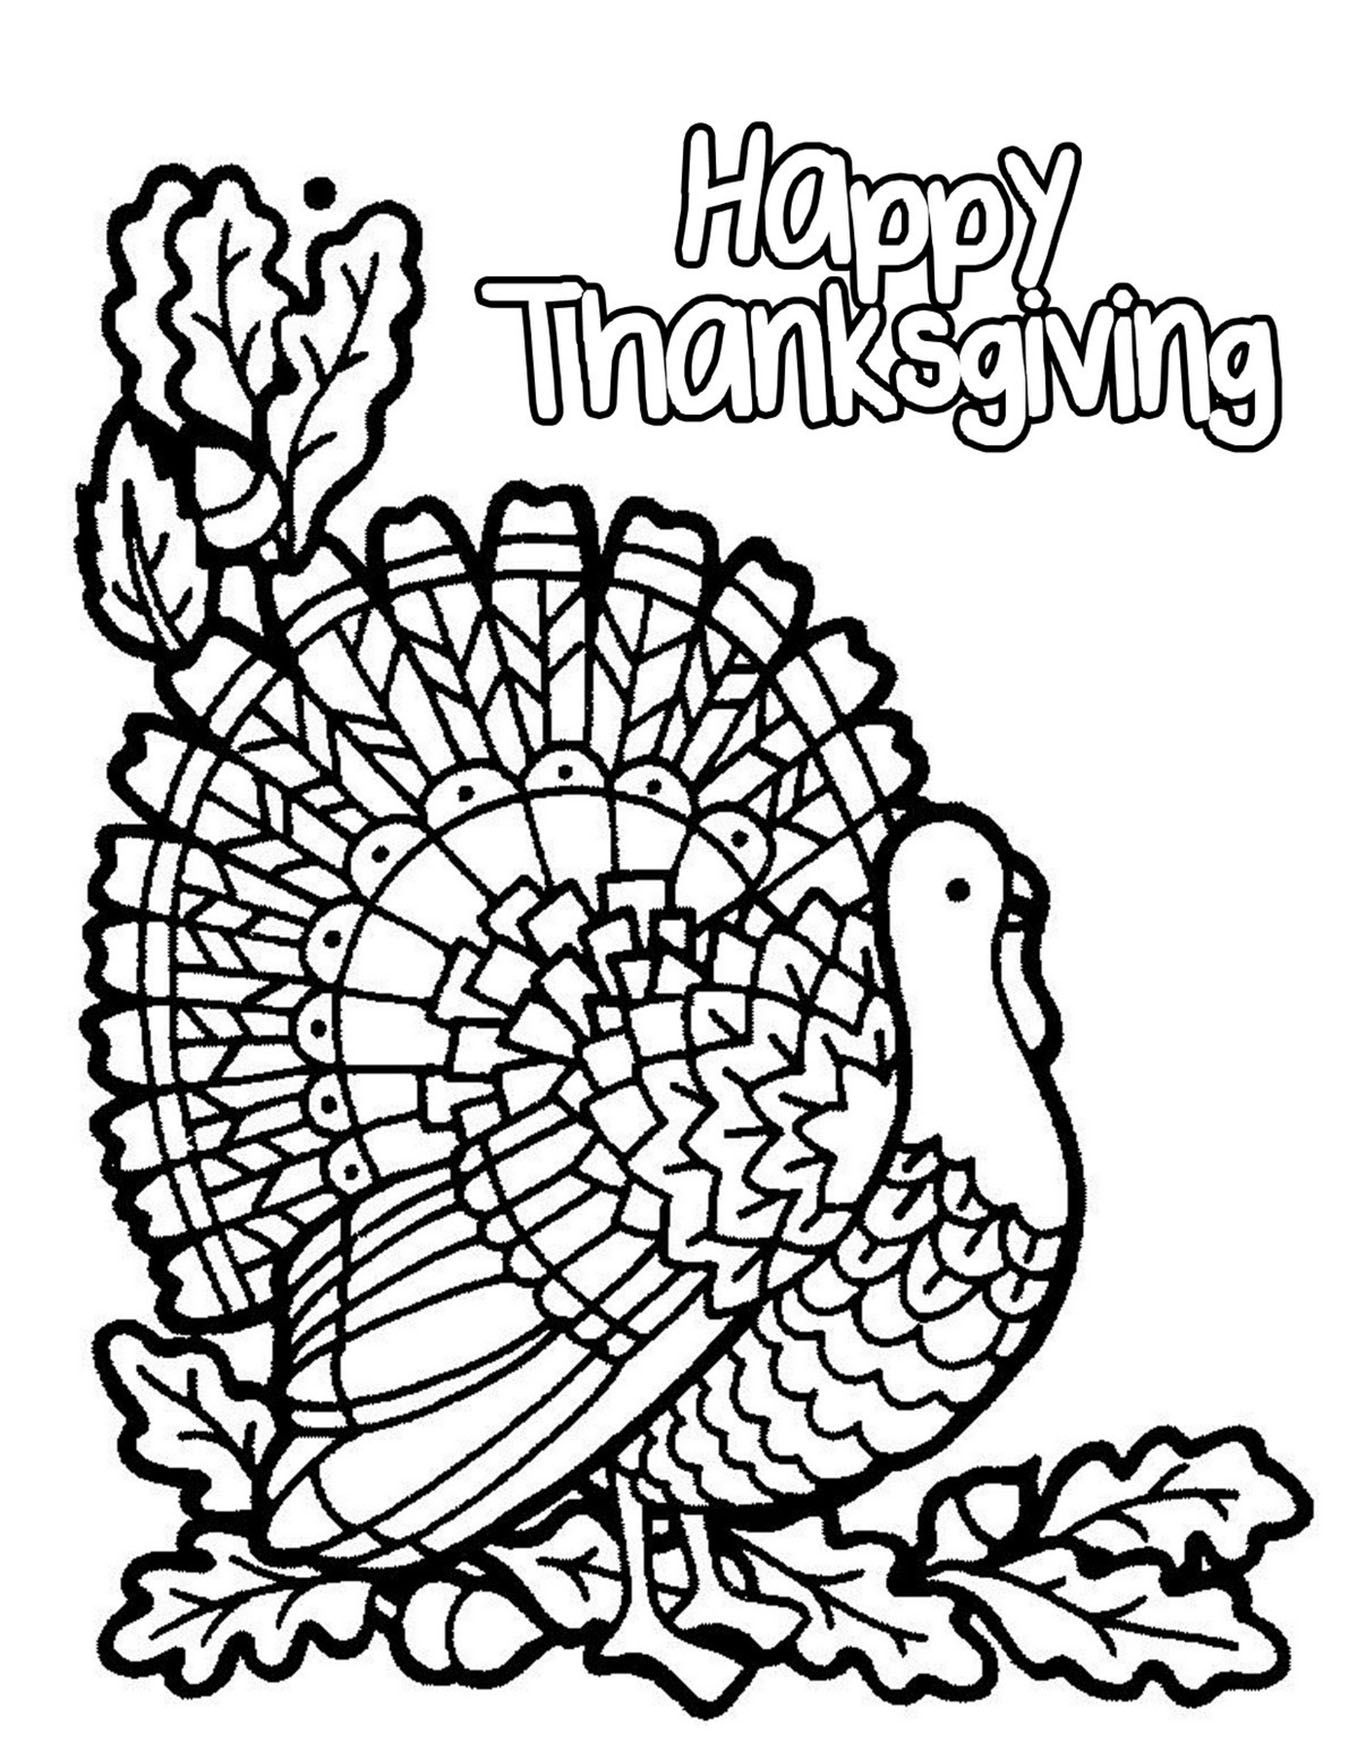 A simple Turkey to print & color for Thanksgiving day